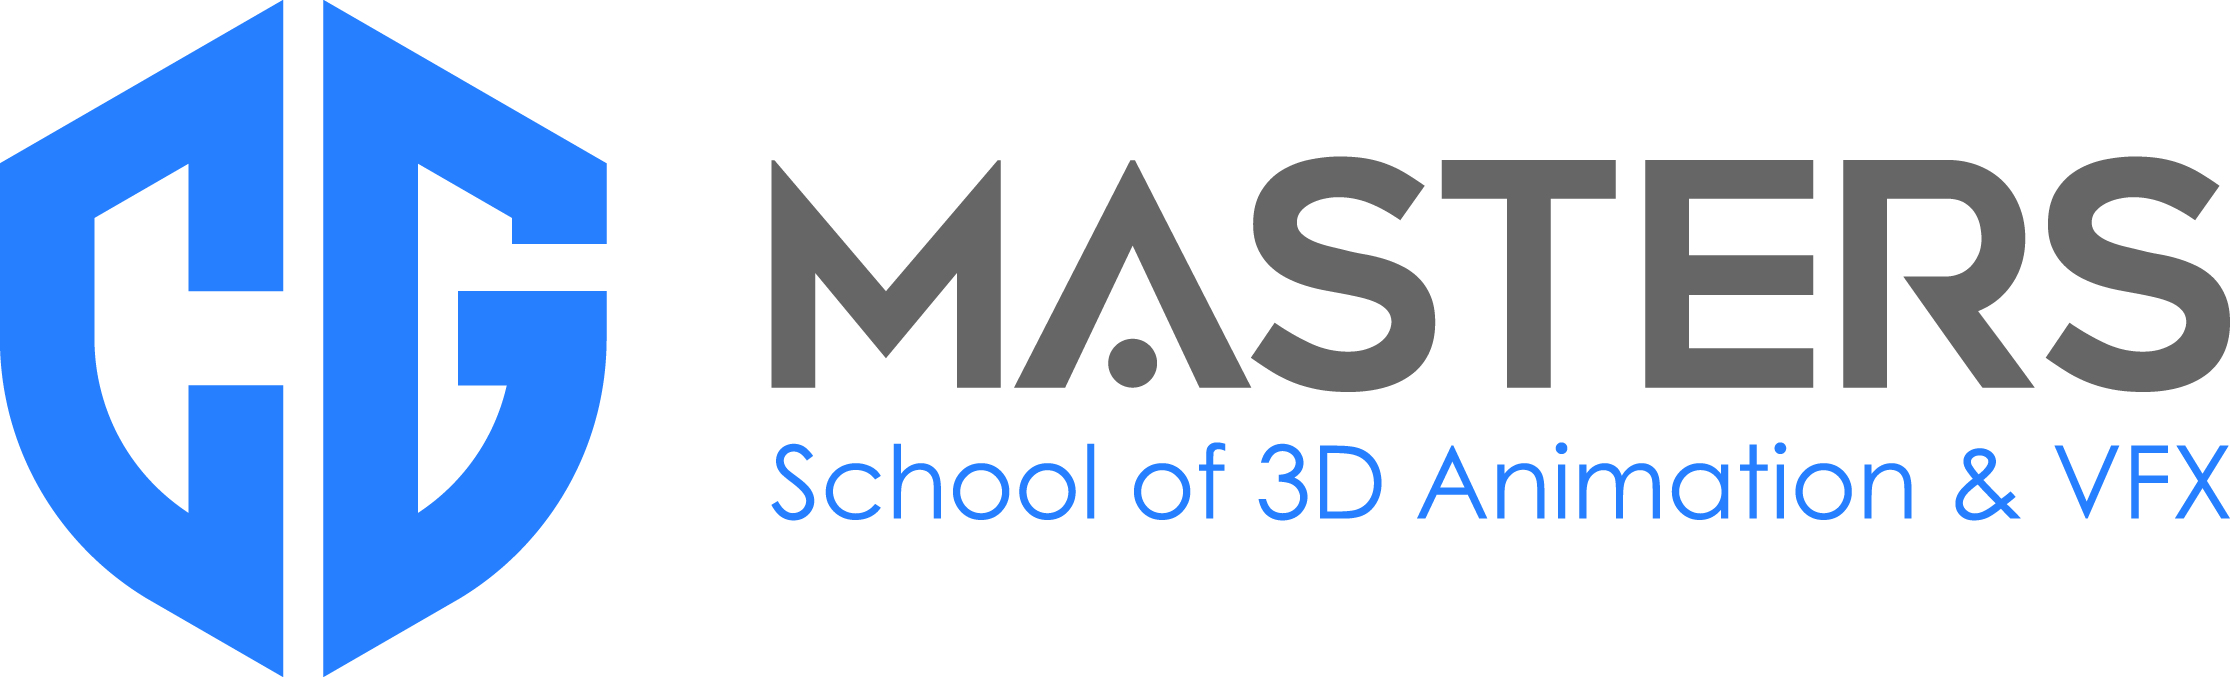 CG Masters School of 3D Animation & VFX